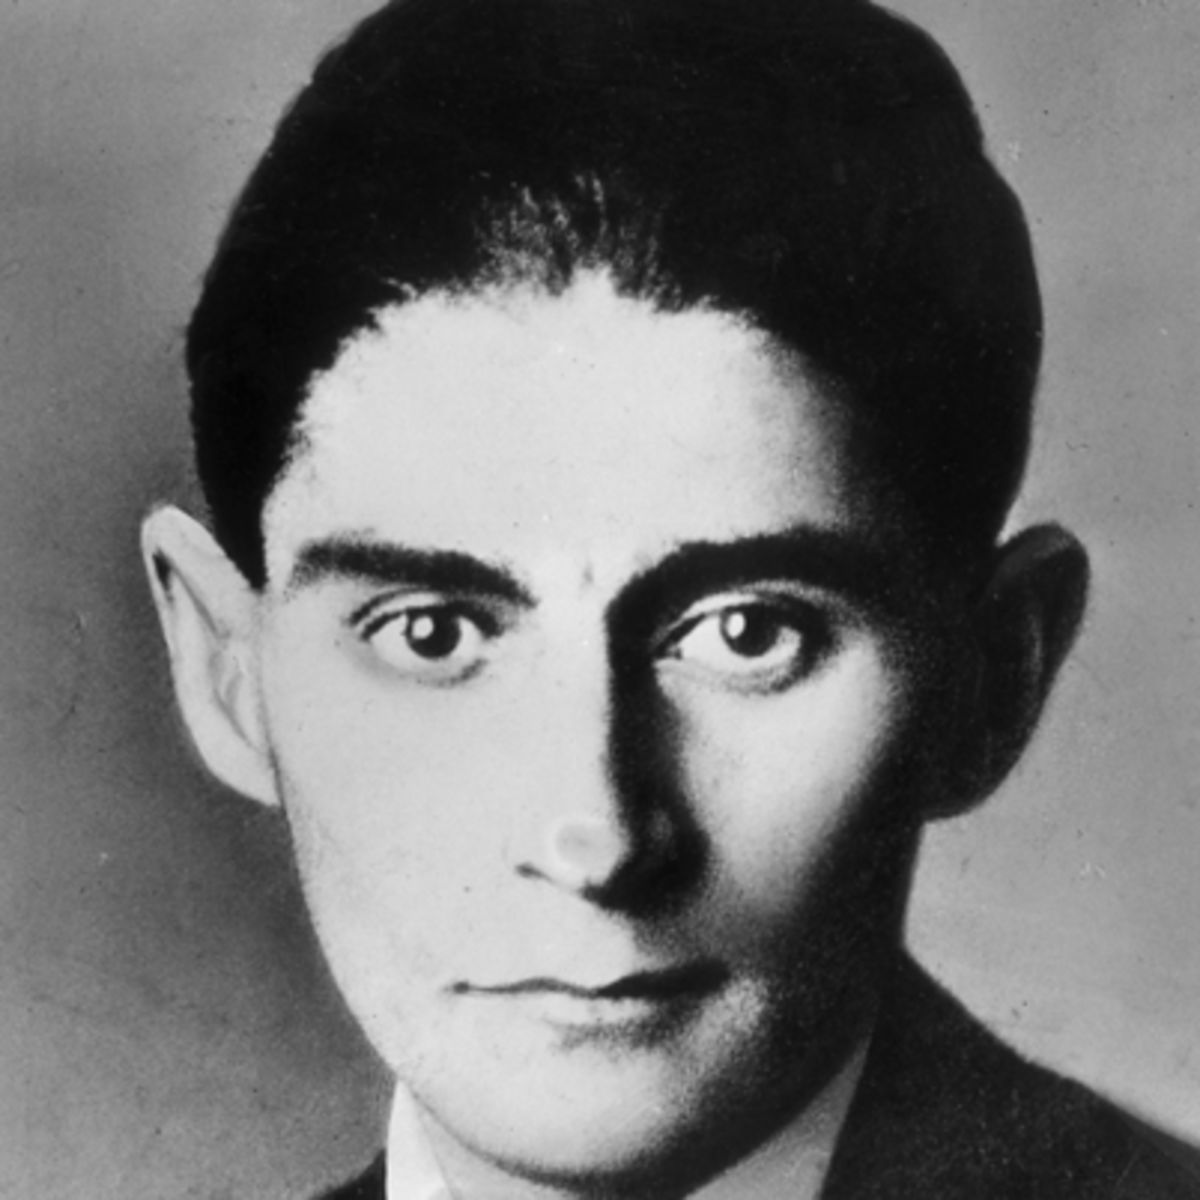 franz kafka s the country doctor analysis Use the following search parameters to narrow your results: subreddit:subreddit find submissions in subreddit author:username find submissions by username.